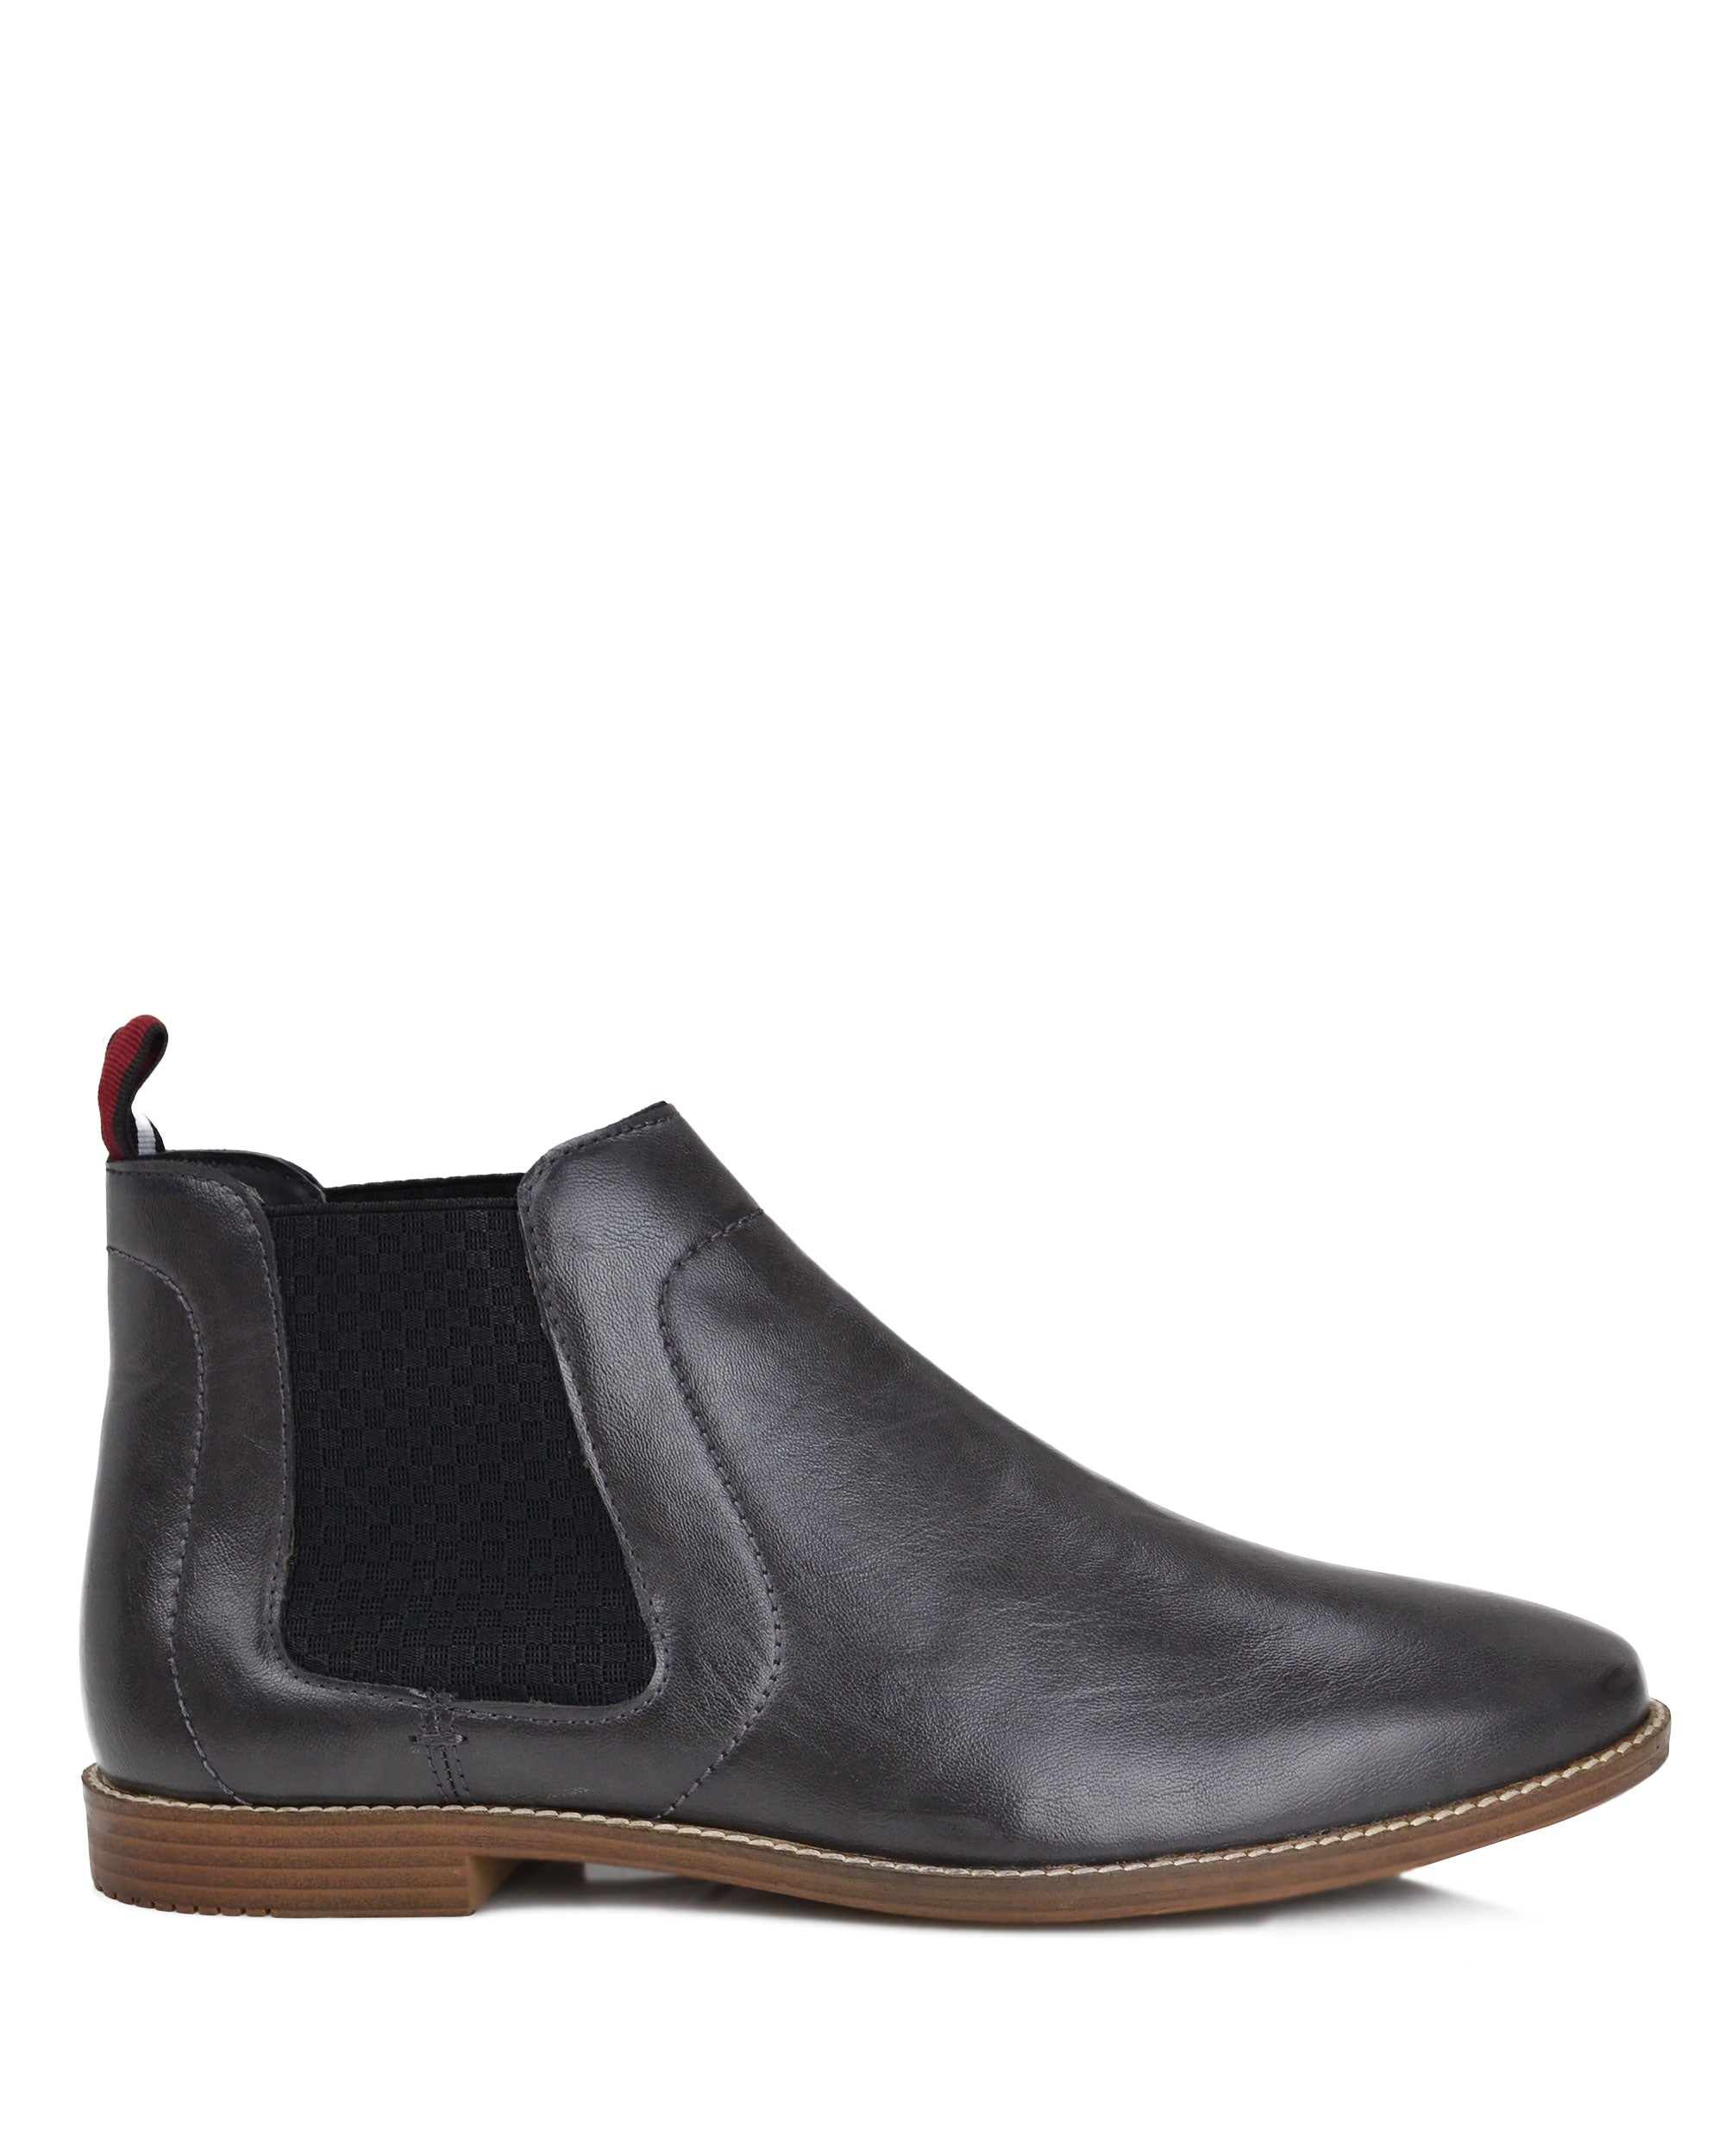 Gaston Chelsea Boot with Elastic Gore - Grey